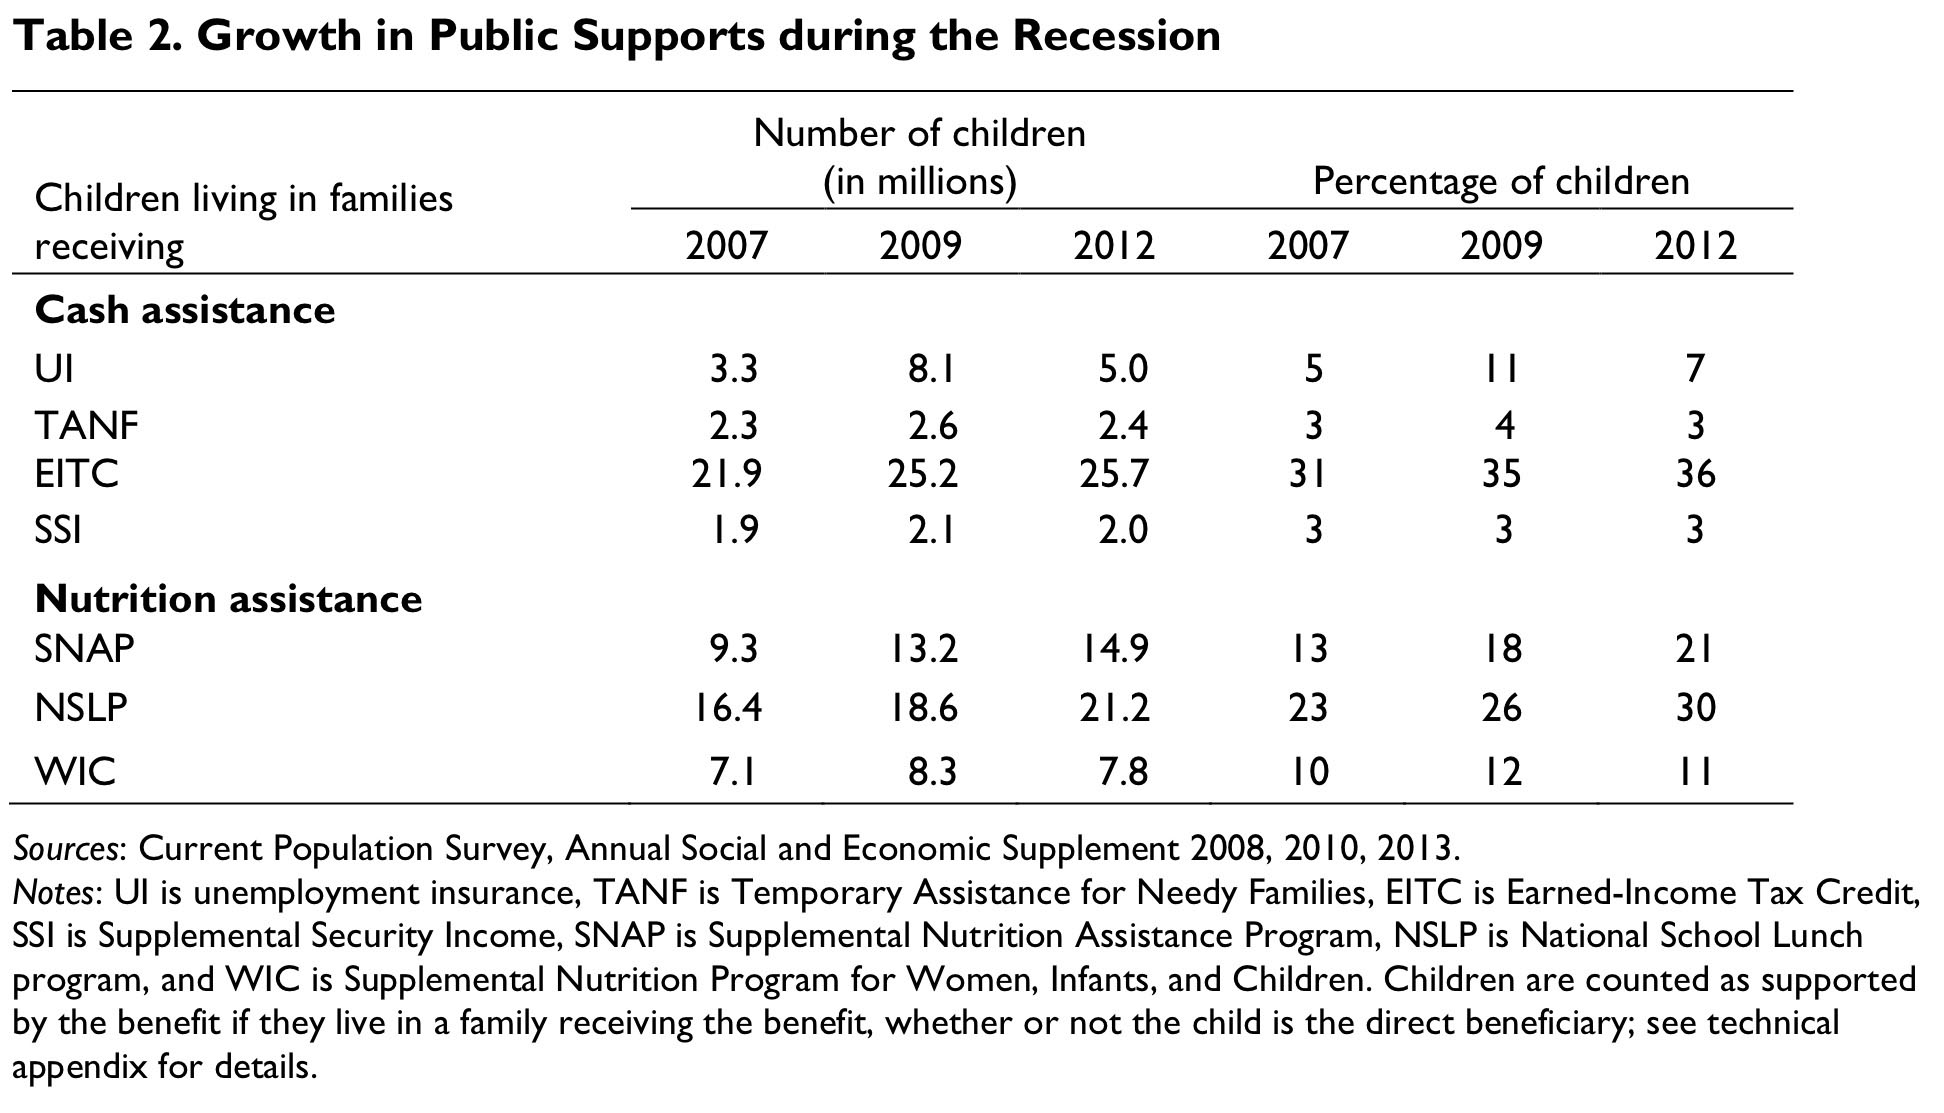 Table 2. Growth in Public Supports during the Recession